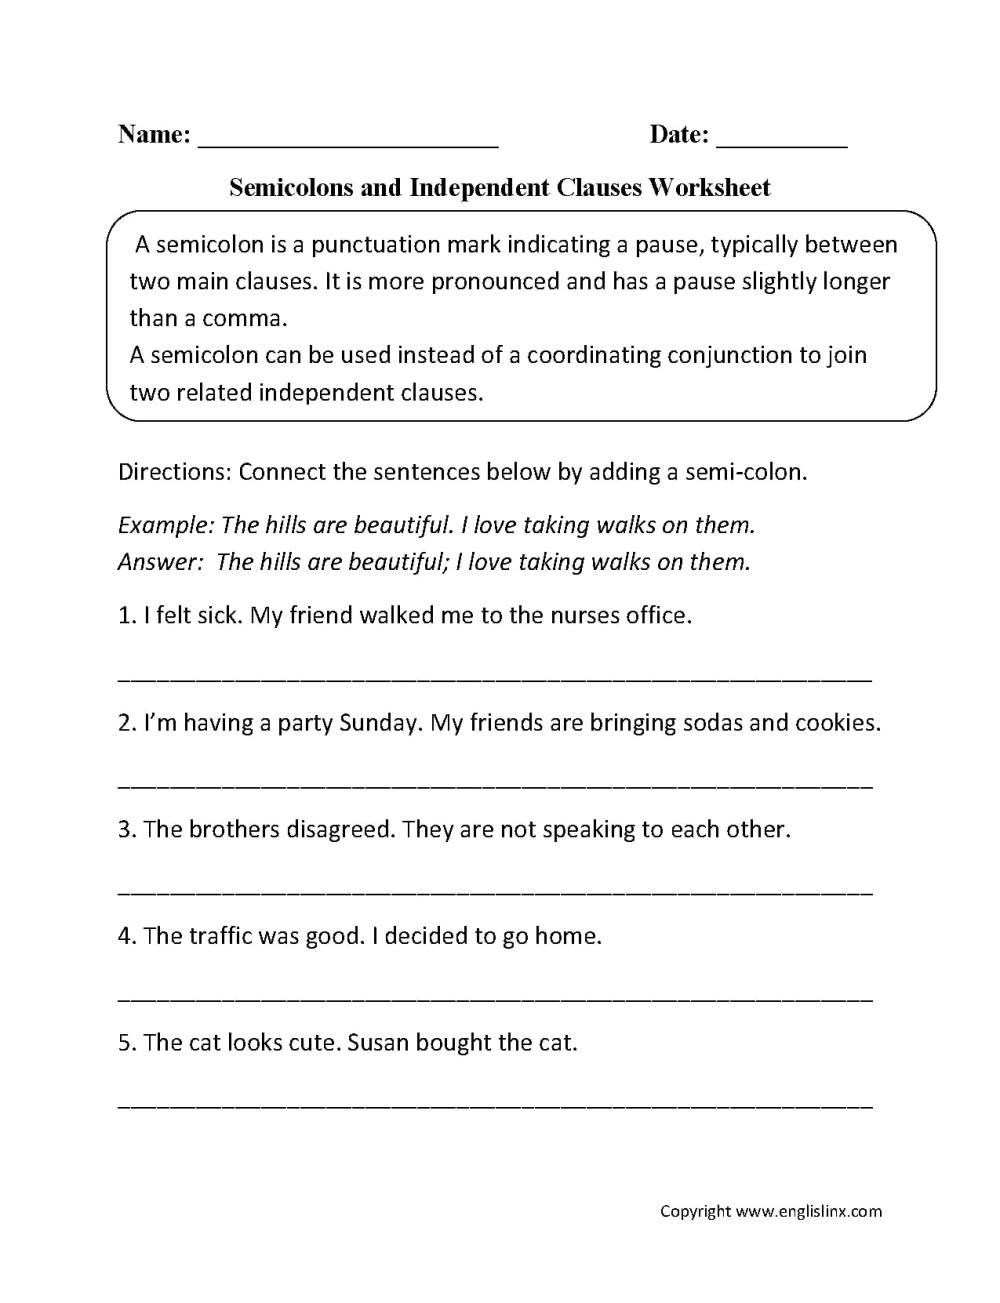 medium resolution of Dependent And Independent Clauses Worksheet 4th Grade   Printable Worksheets  and Activities for Teachers